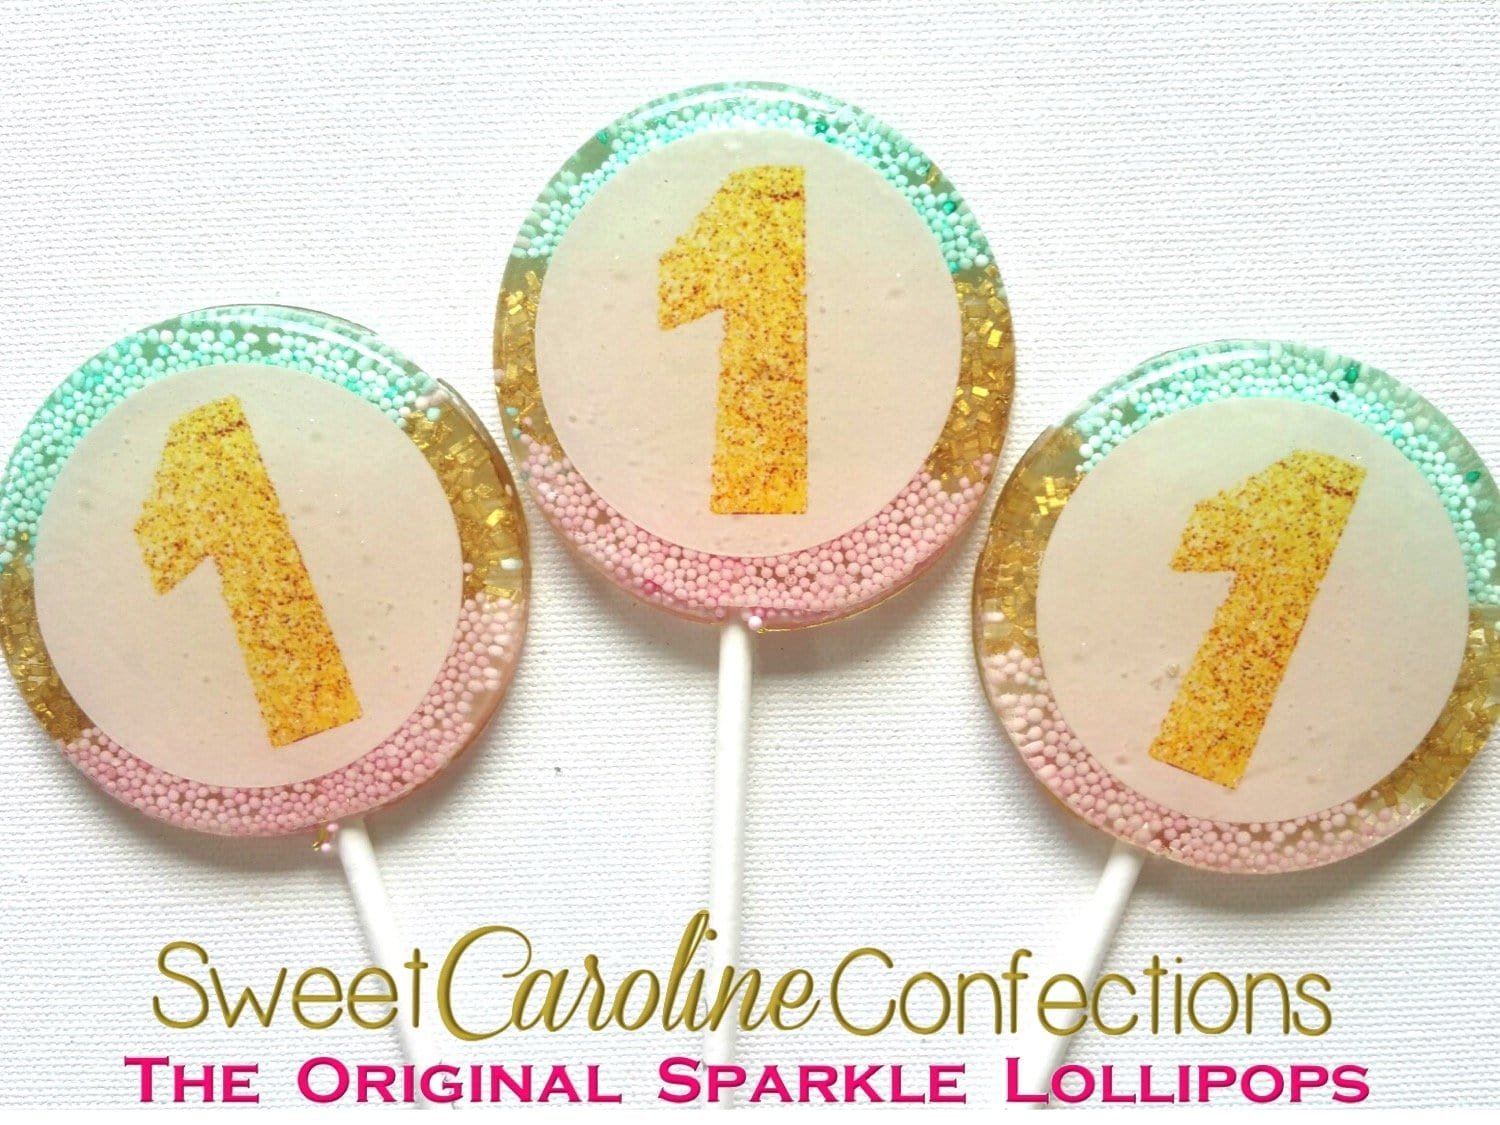 Pink, Aqua, Gold Number Sparkle Lollipops - Sweet Caroline Confections | The Original Sparkle Lollipops